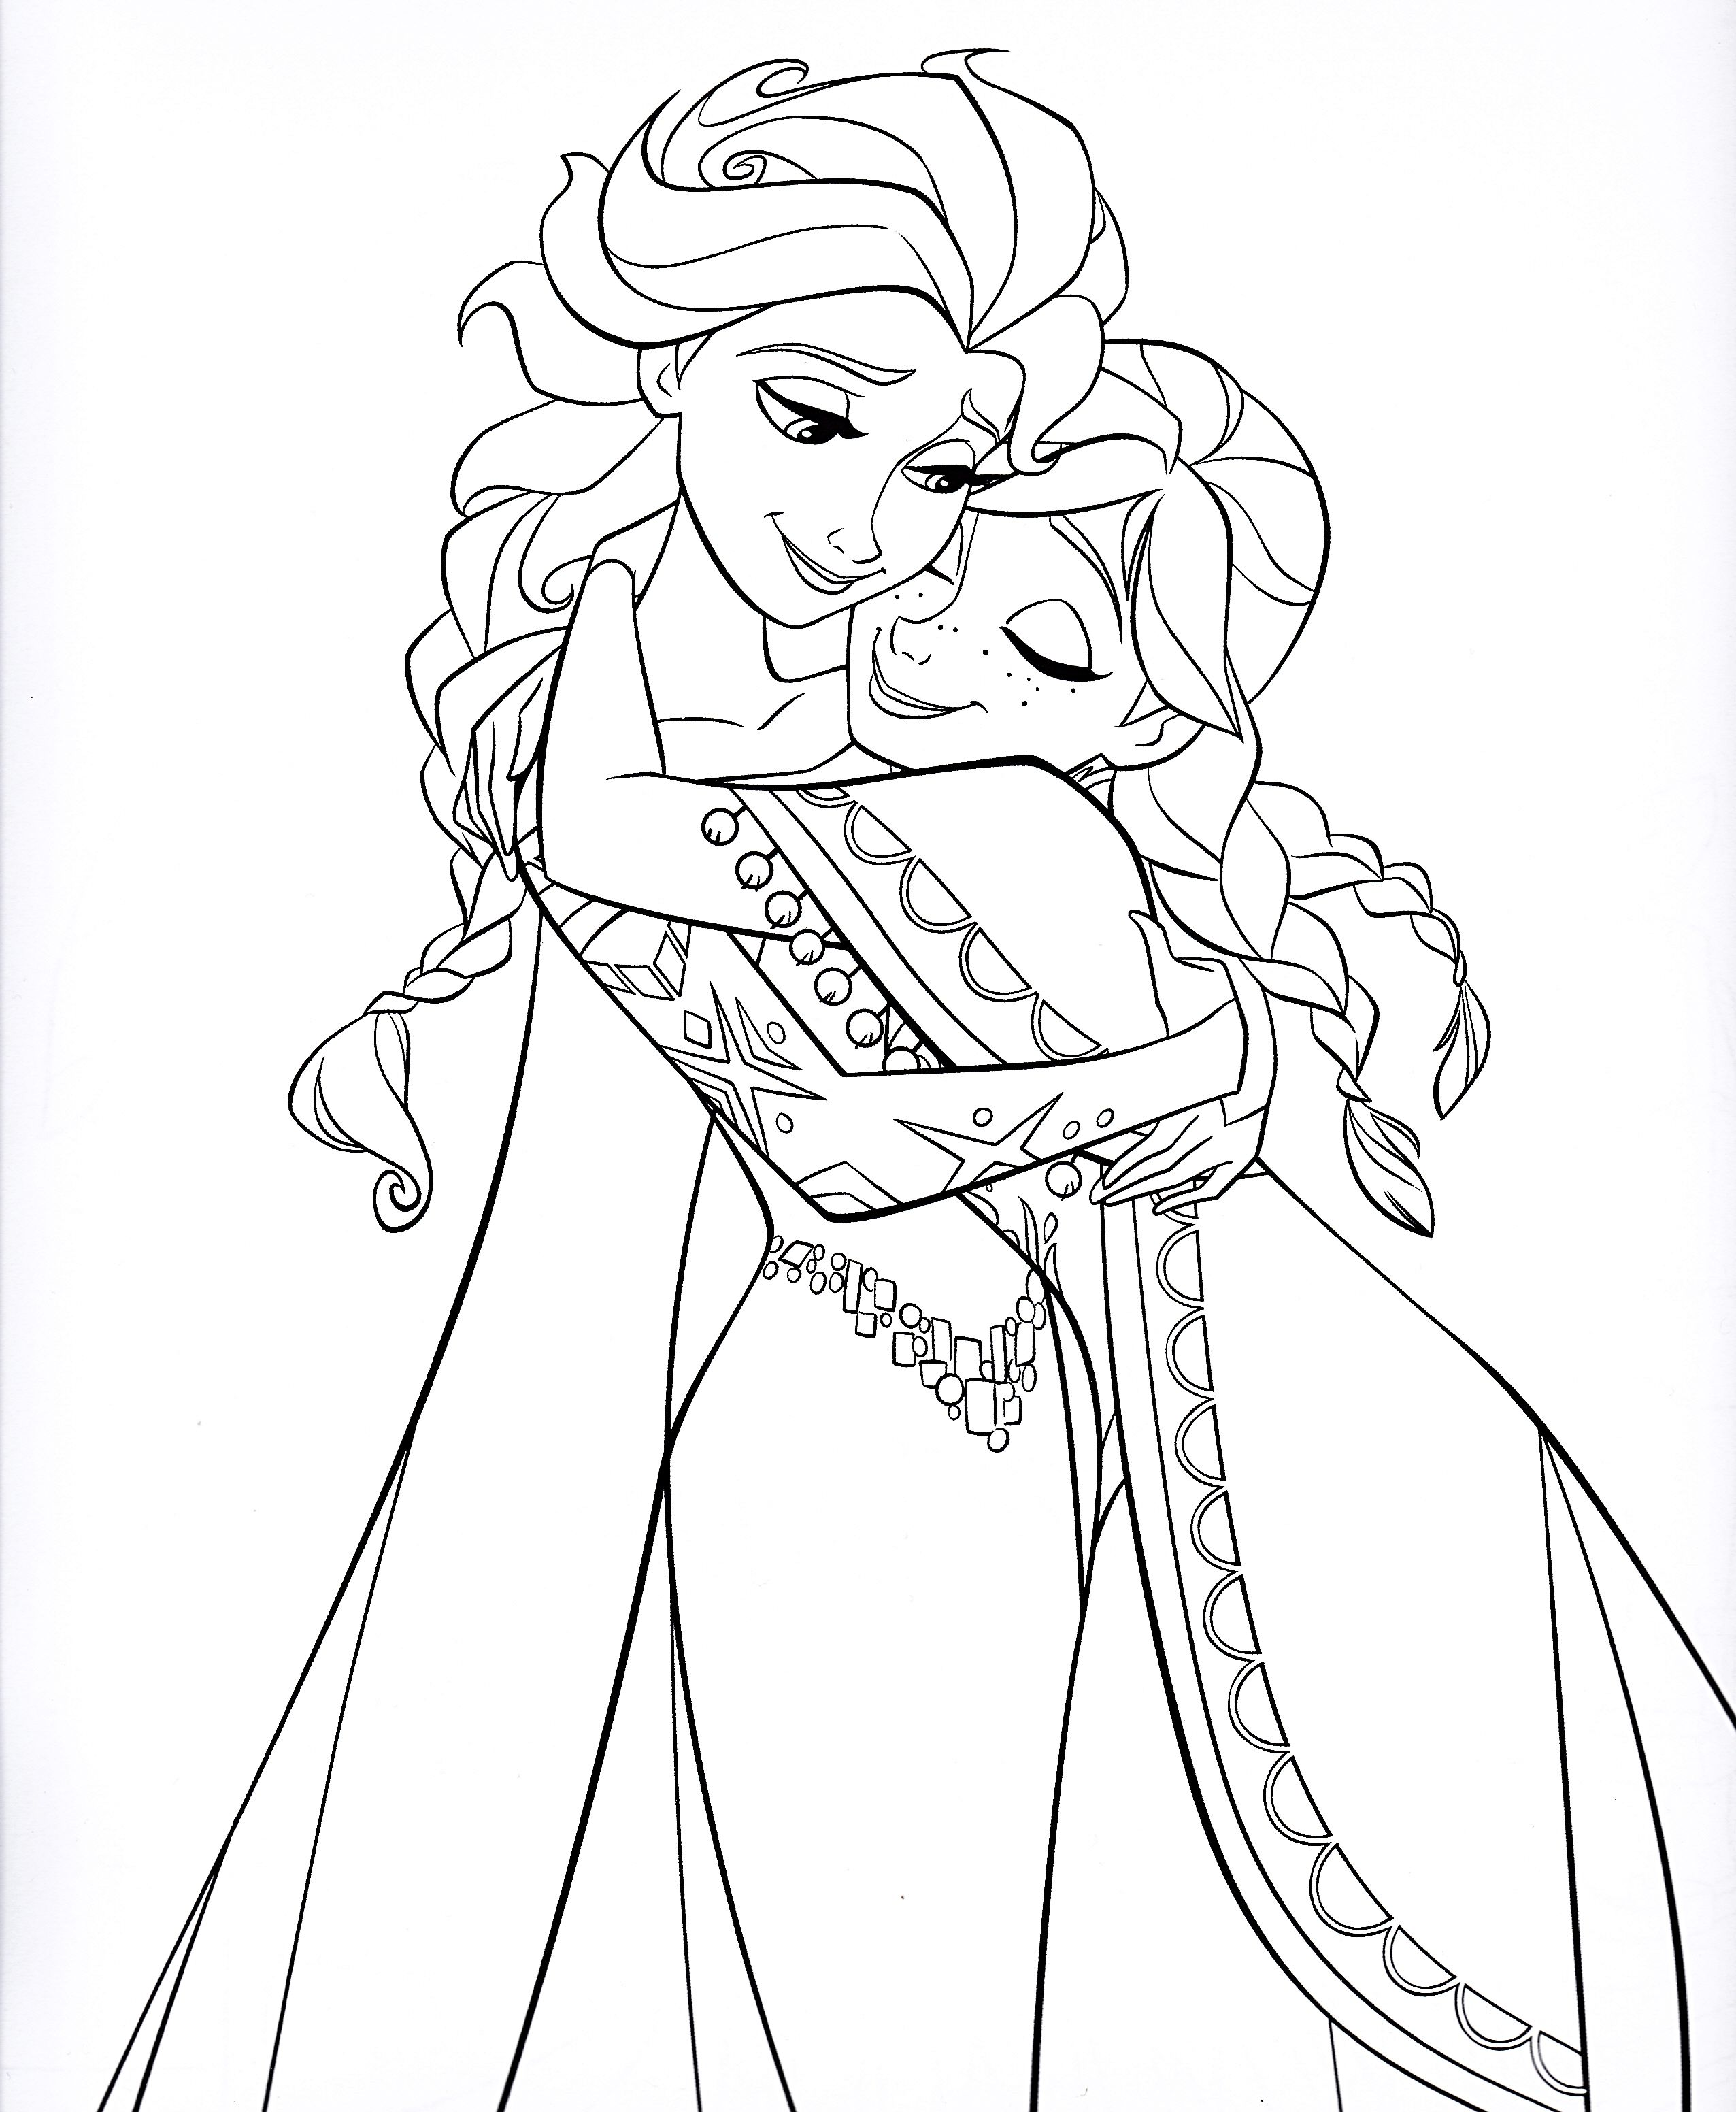 Walt Disney Characters Photo Walt Disney Coloring Pages Queen Elsa Princess Anna Disney Princess Coloring Pages Elsa Coloring Pages Frozen Coloring Pages